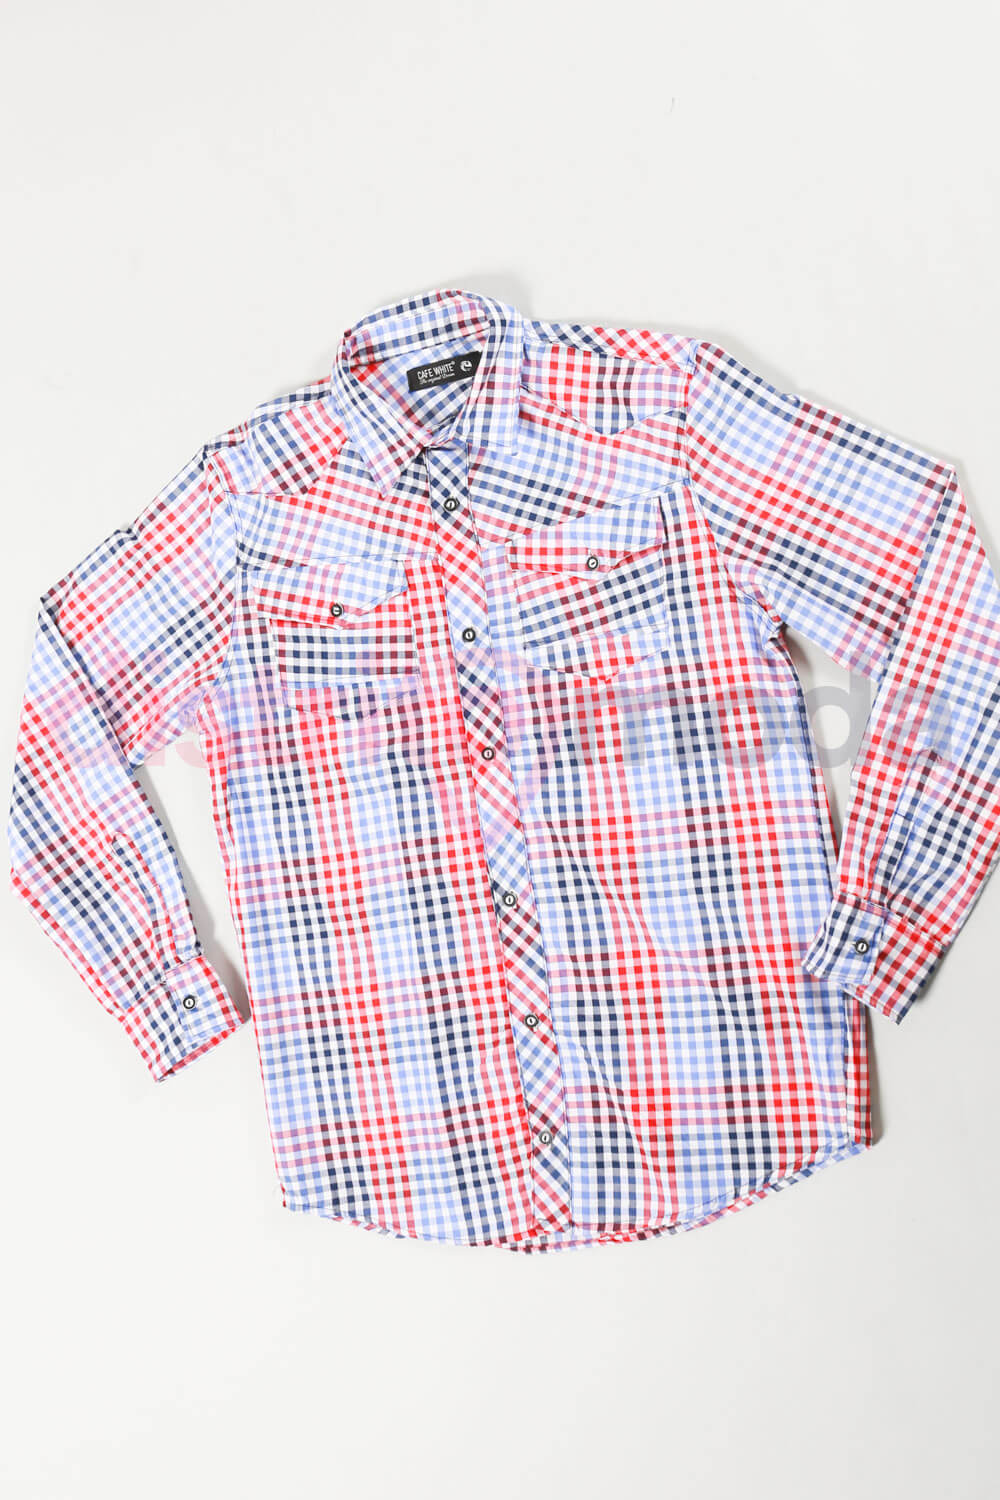 Imagen producto Camisa Escocesa Talle XS a XL 4